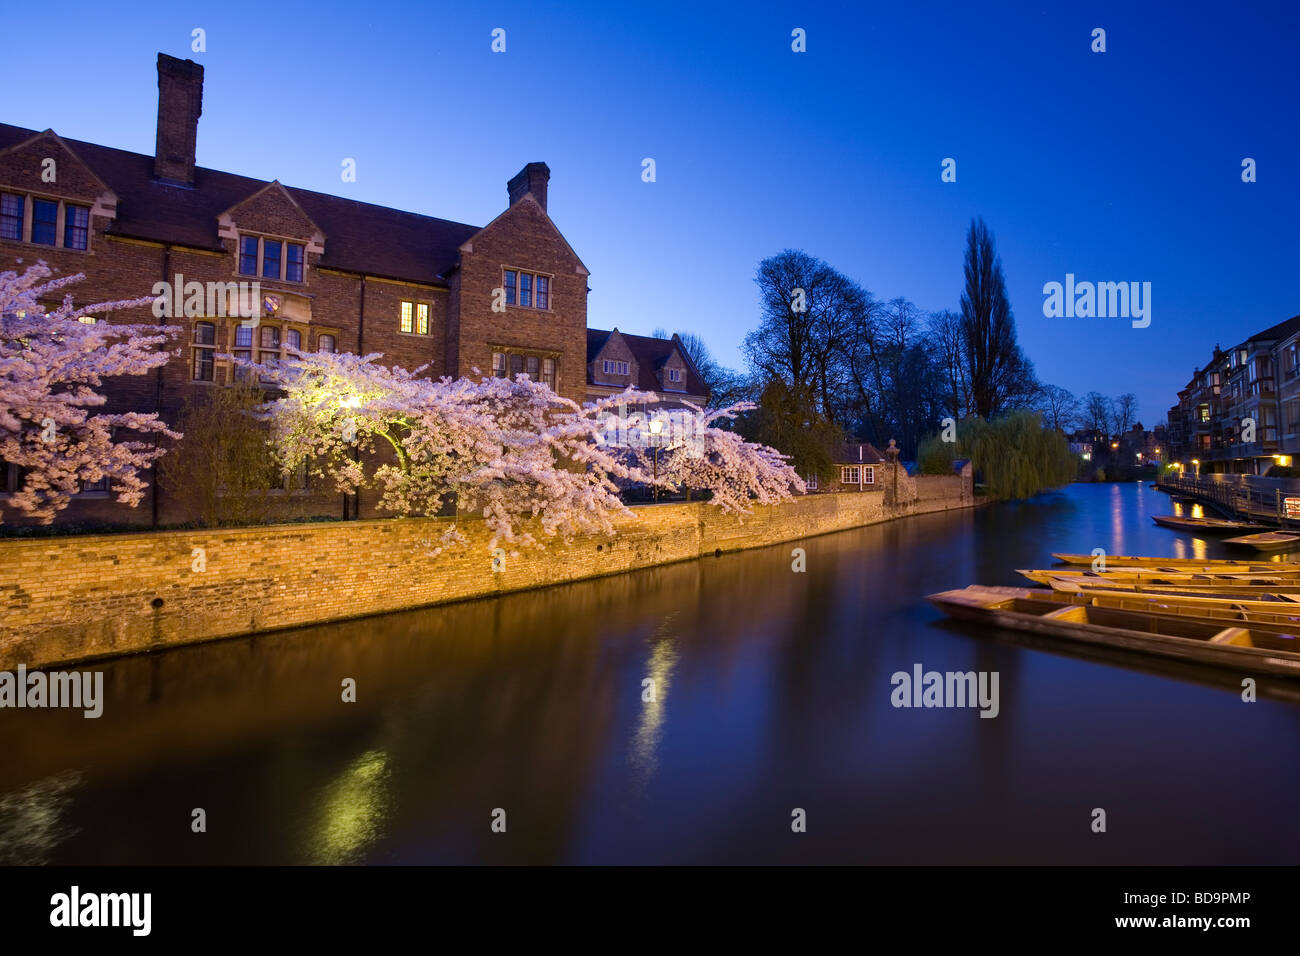 Magdelene College, Cambridge, at night with cherry blossom. - Stock Image